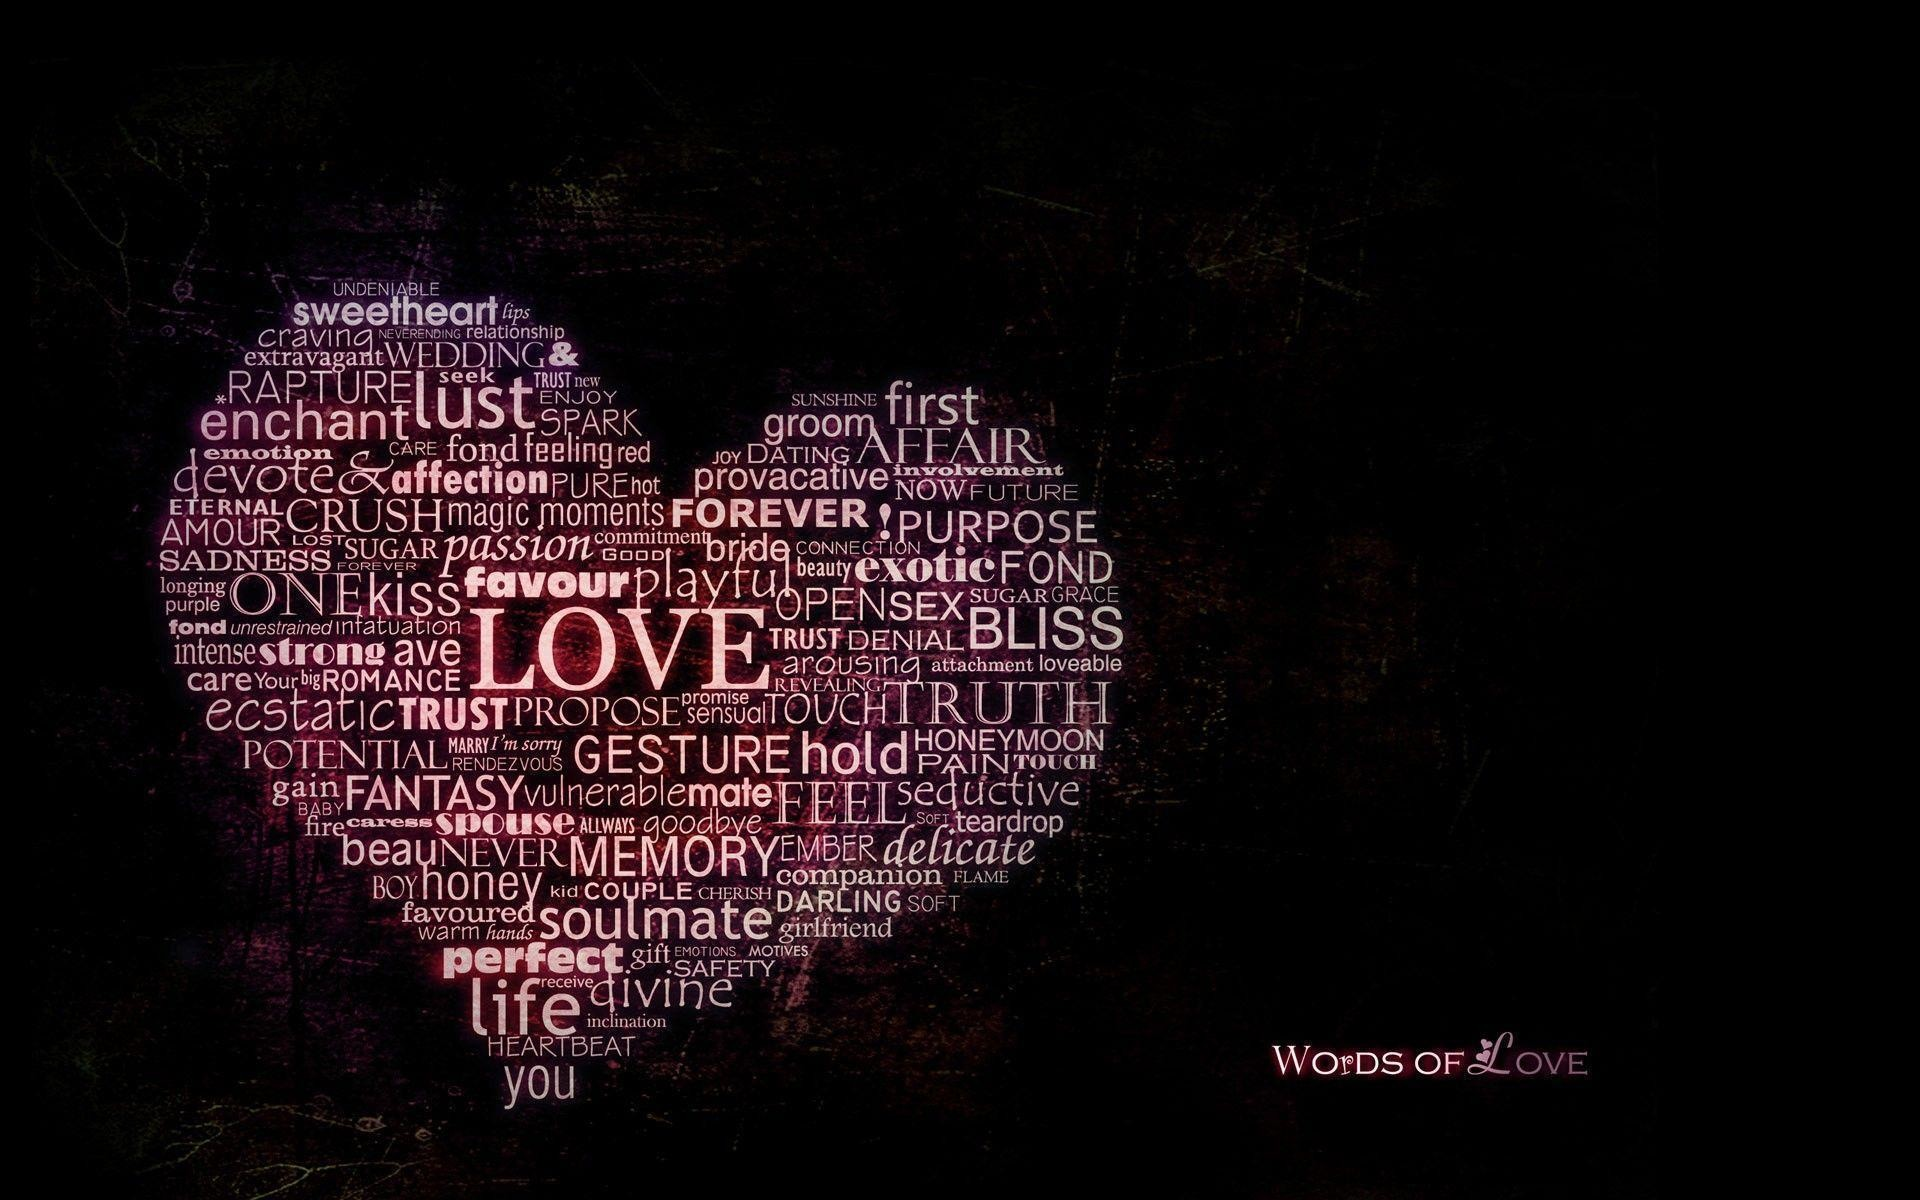 My Love Quotes Pictures HD Wallpaper 1920x1080. 1920x1080. 8 · Download